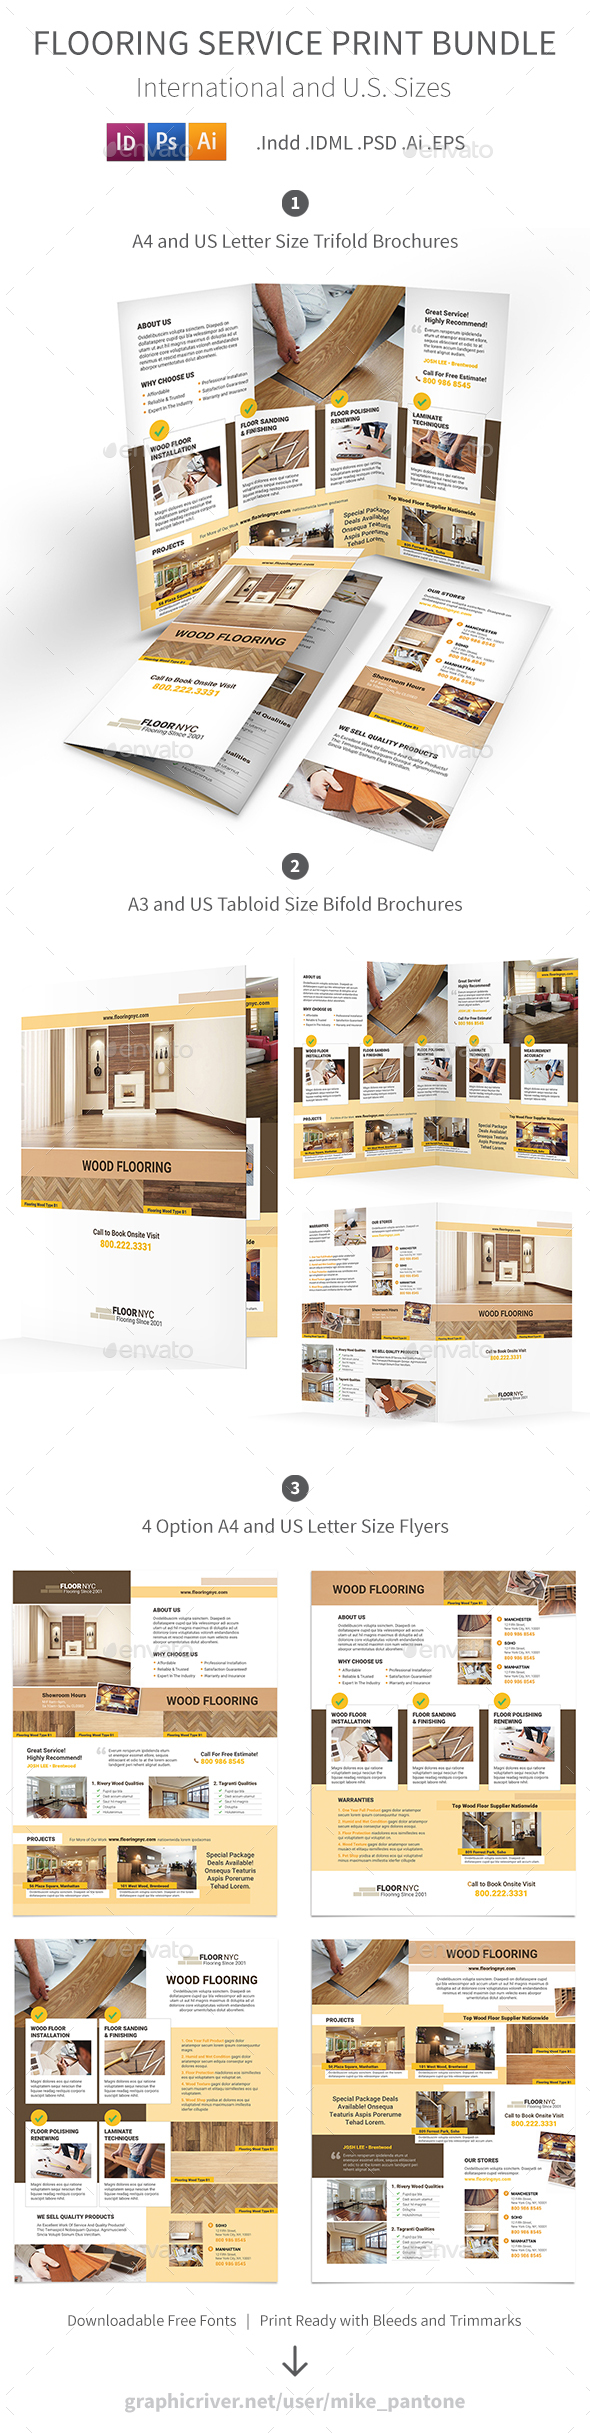 Flooring Service Print Bundle - Informational Brochures